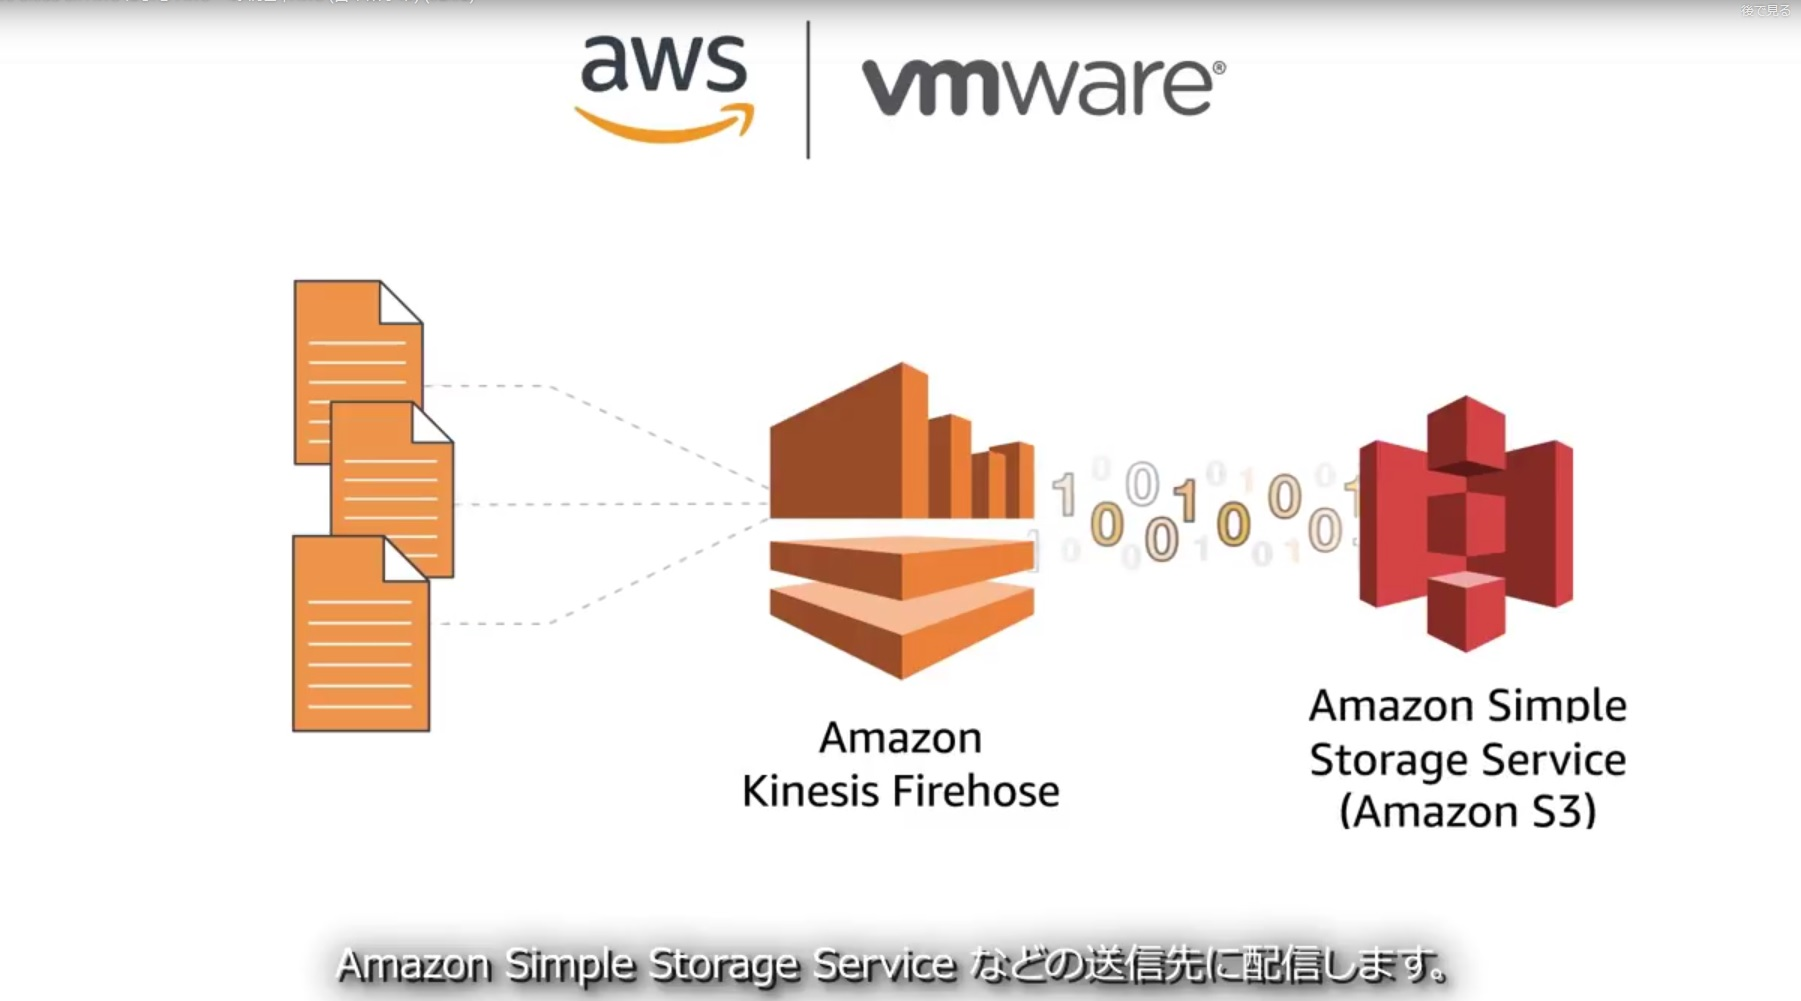 vmware on aws video04